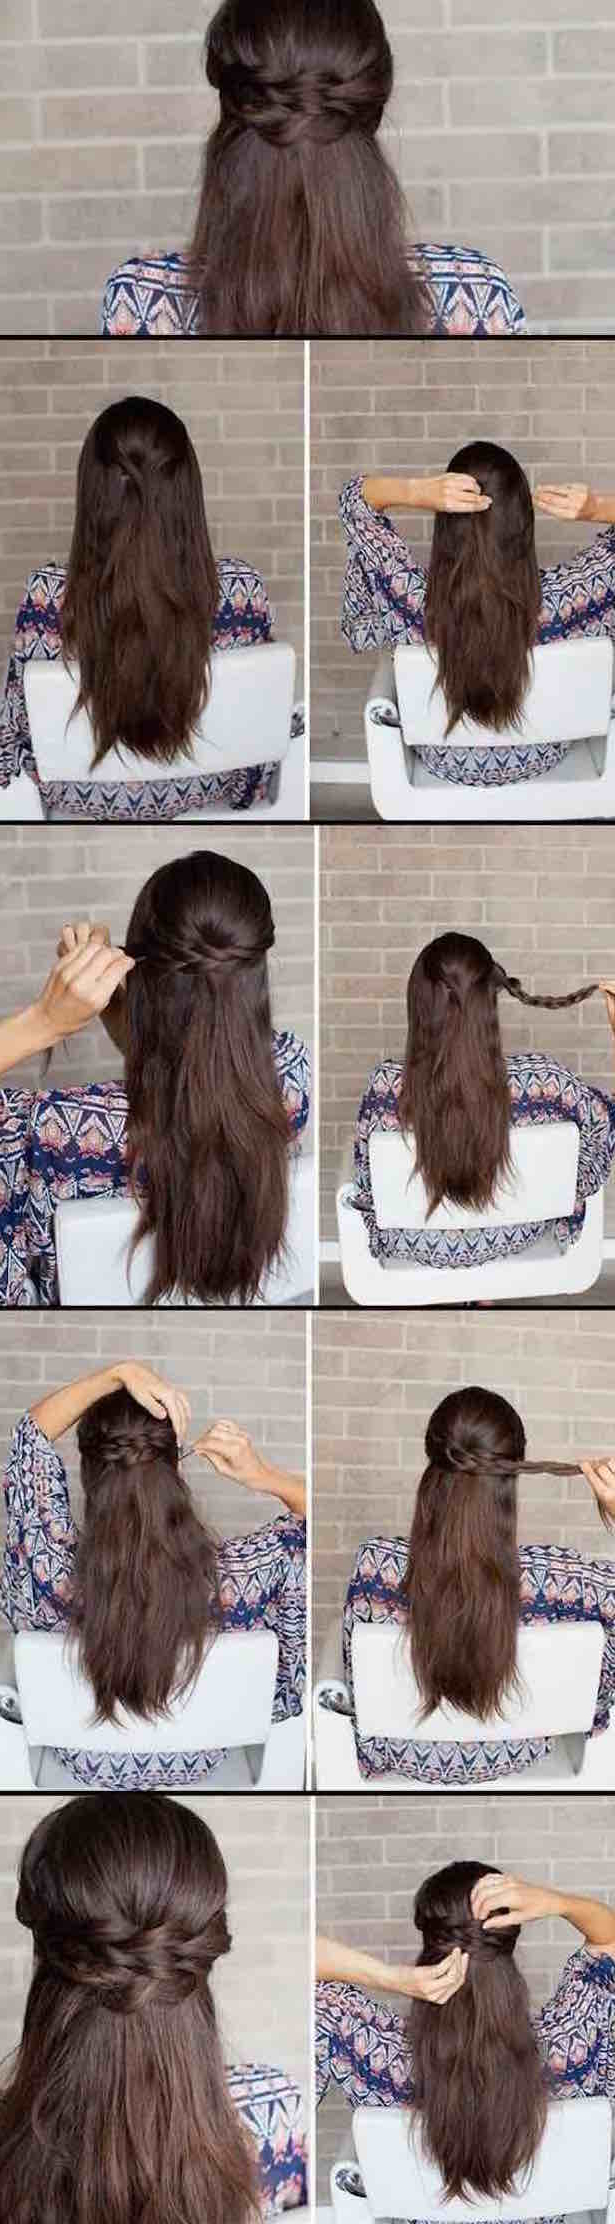 25 Easy Half Up Half Down Hairstyle Tutorials For Prom – The Goddess Within Newest Half Short Half Medium Haircuts (View 16 of 20)